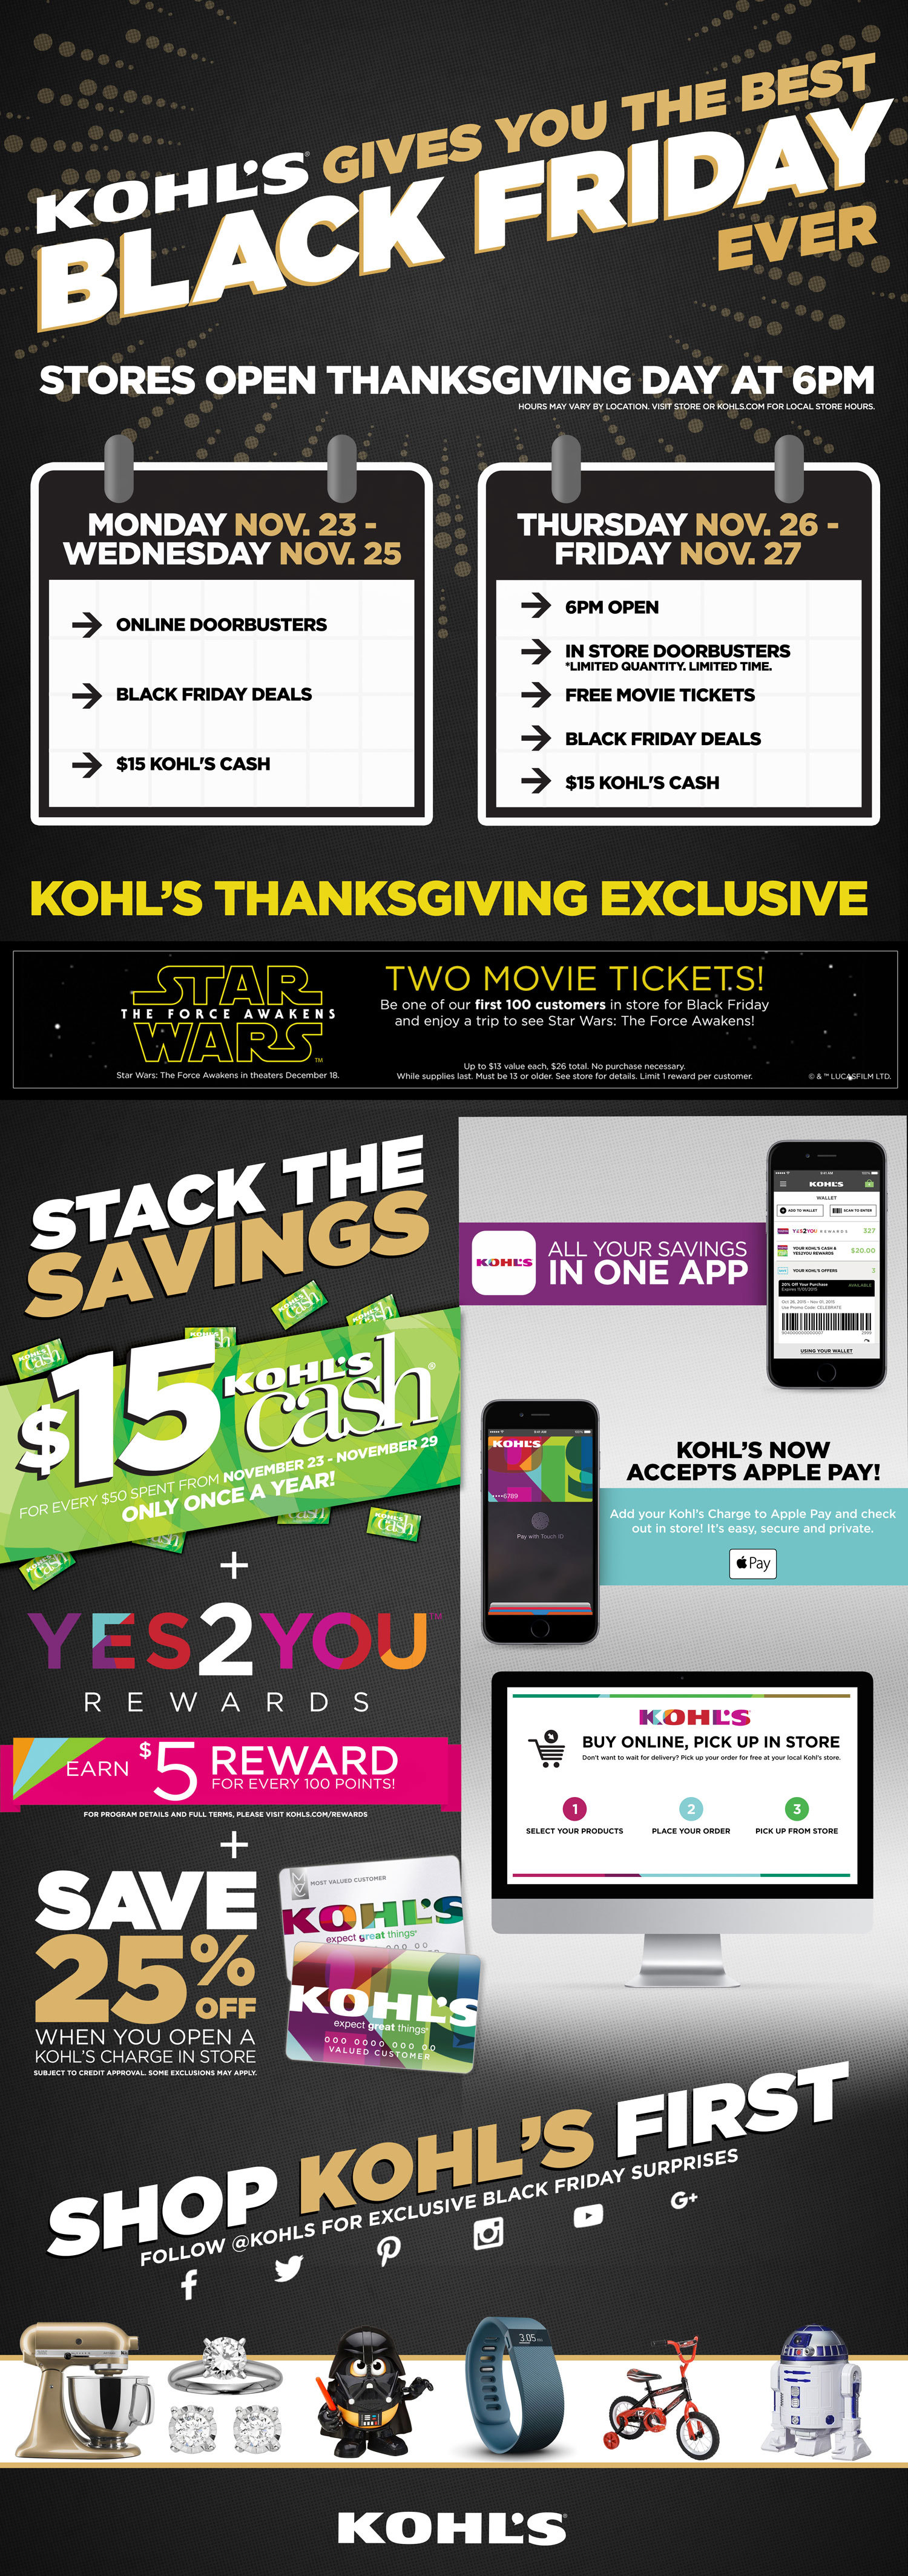 Black Friday Shopping Guide  Who s Offering Deals on Thanksgiving ... f3603dd5d